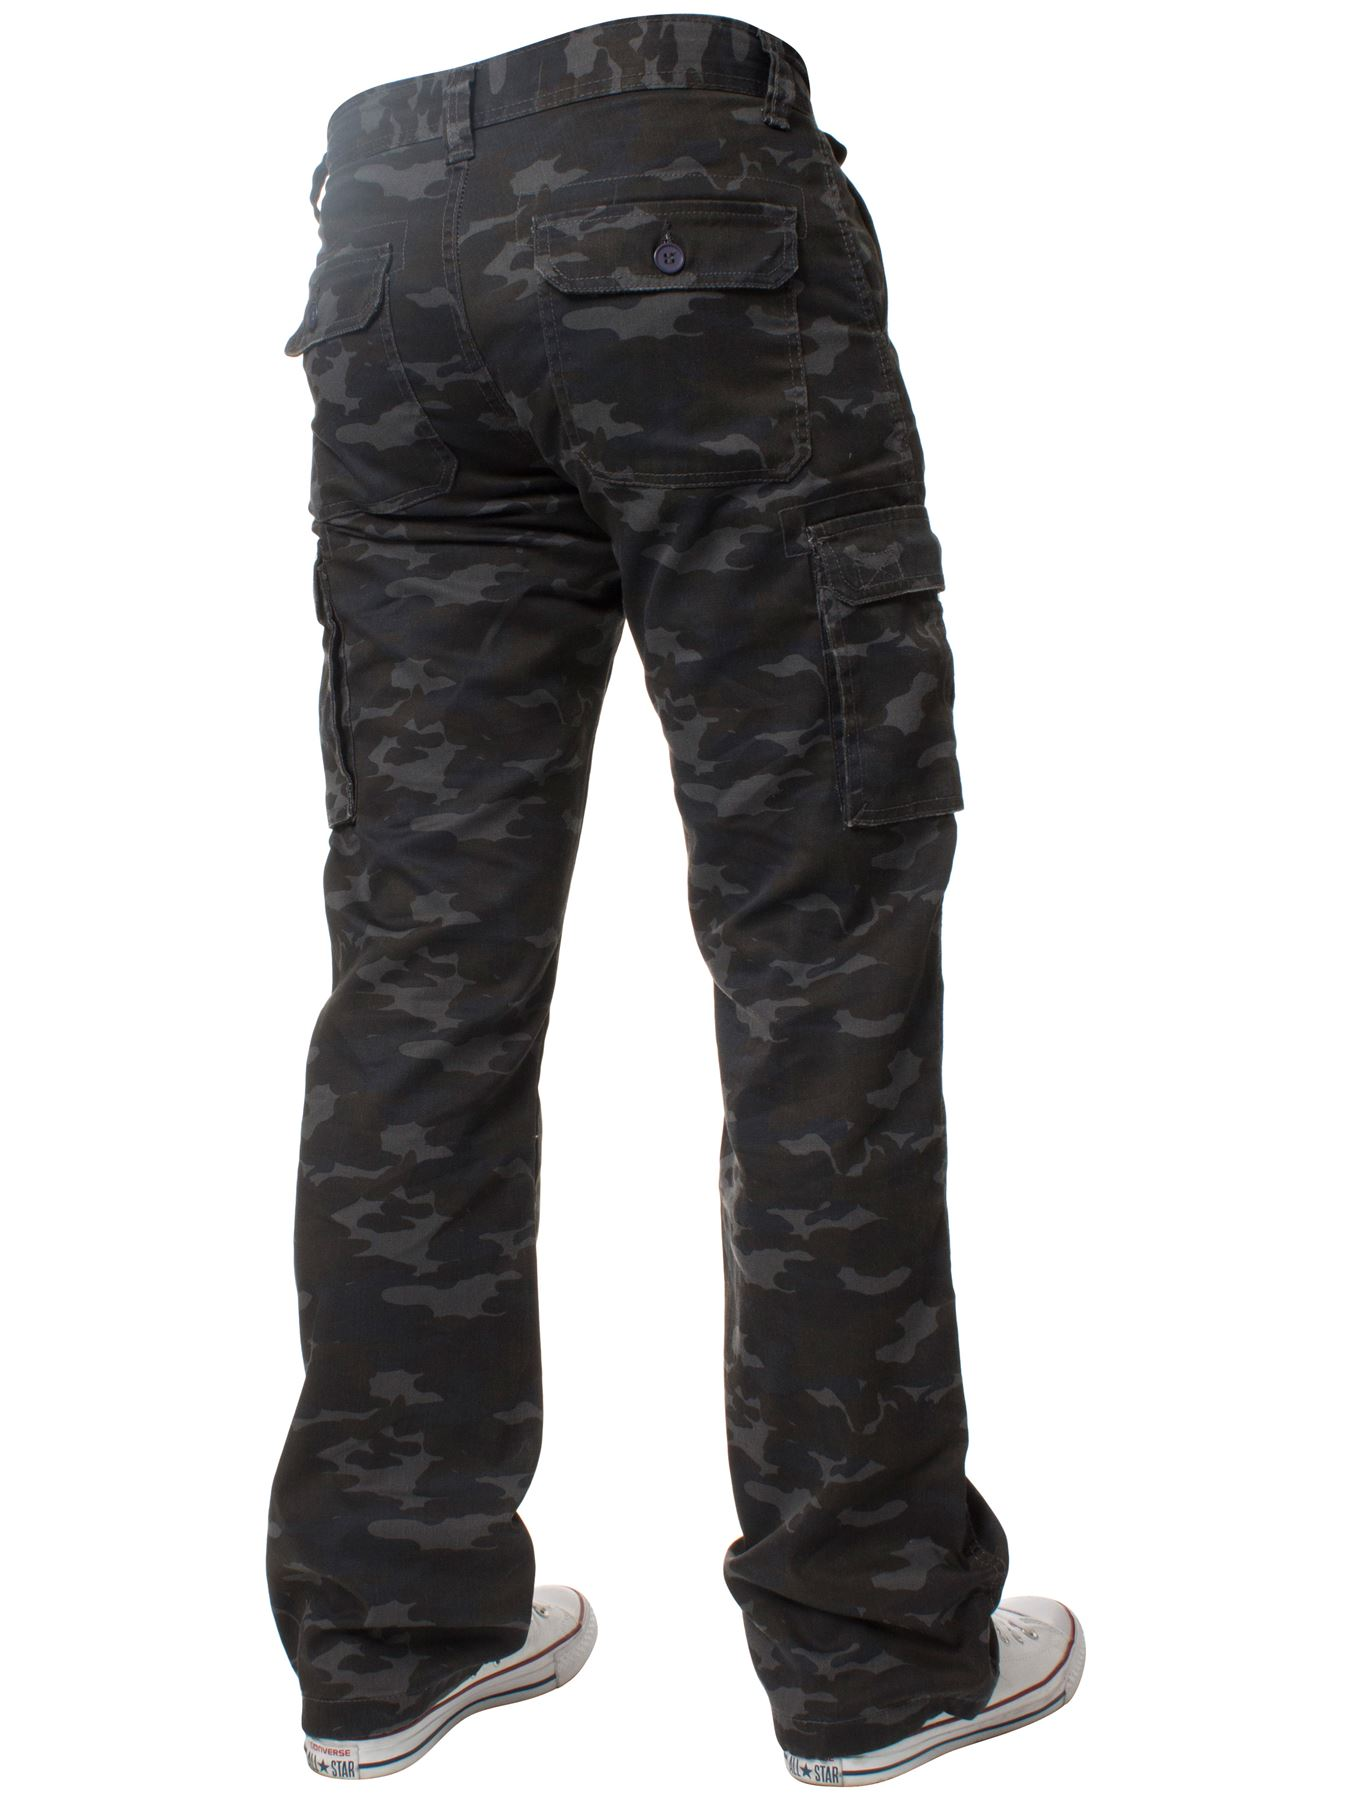 Kruze-Mens-Military-Combat-Trousers-Camouflage-Cargo-Camo-Army-Casual-Work-Pants thumbnail 32